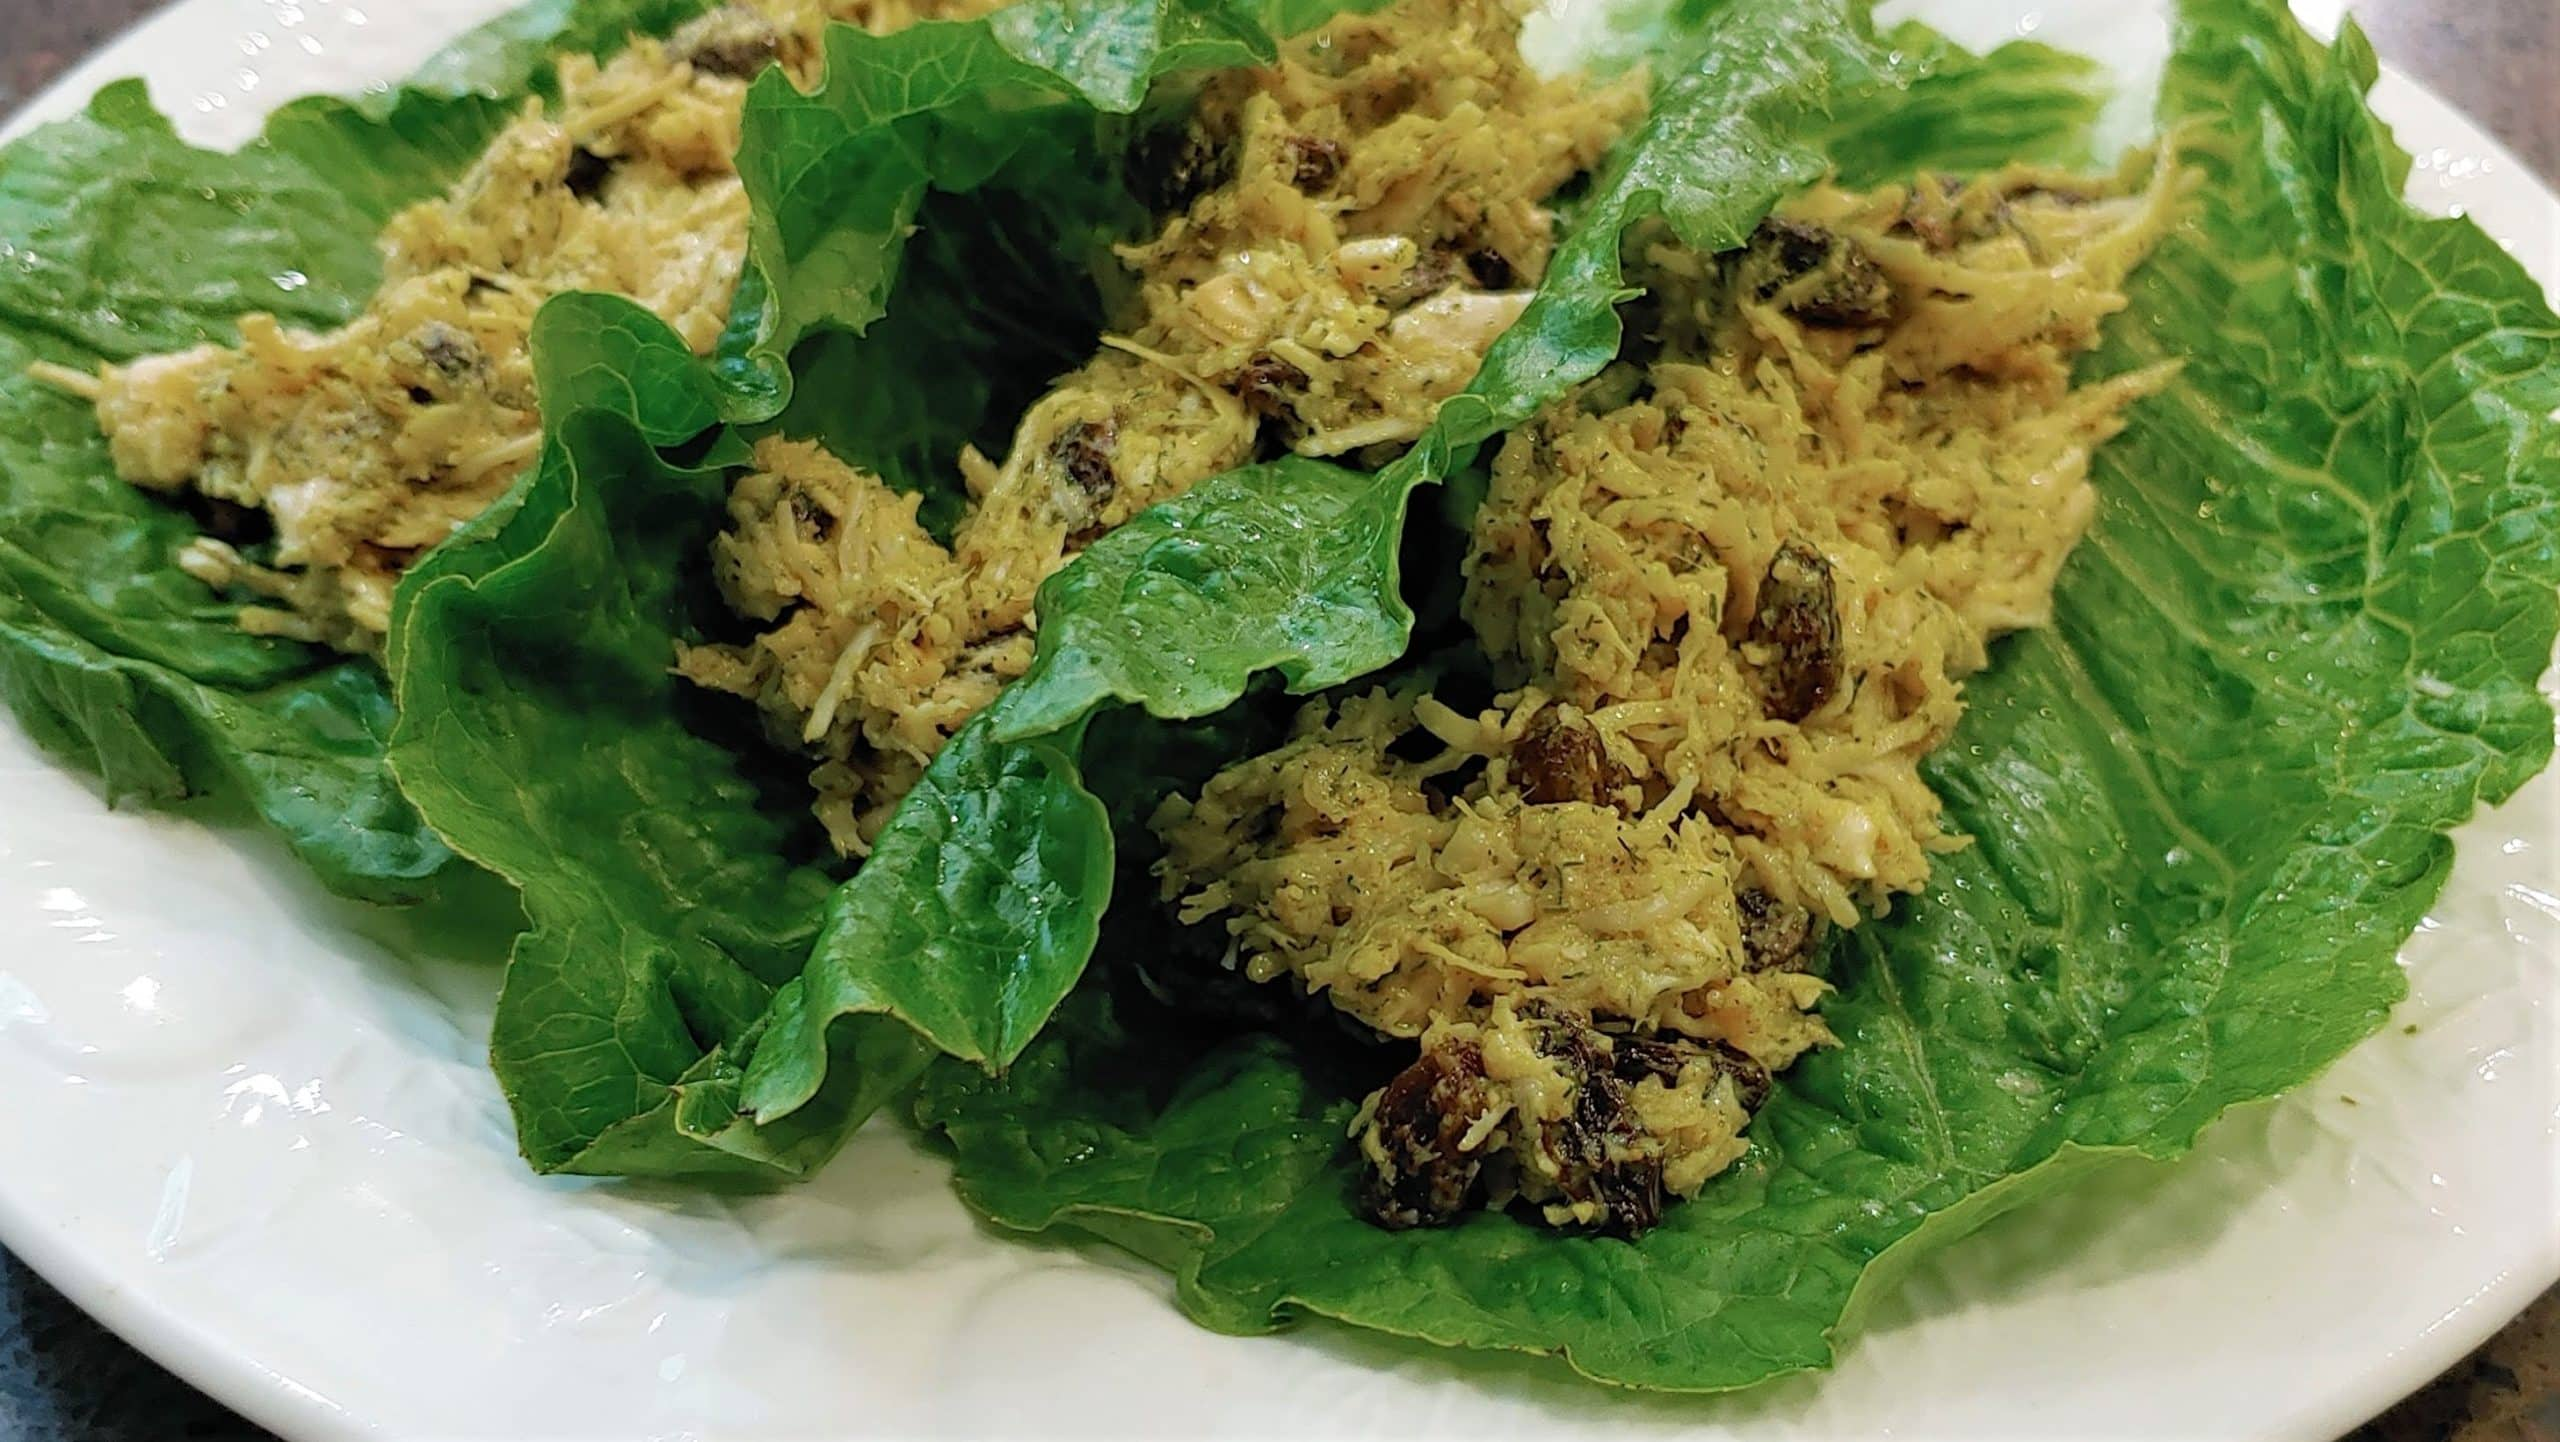 Chicken Salad lettuce wraps - Dining in with Danielle